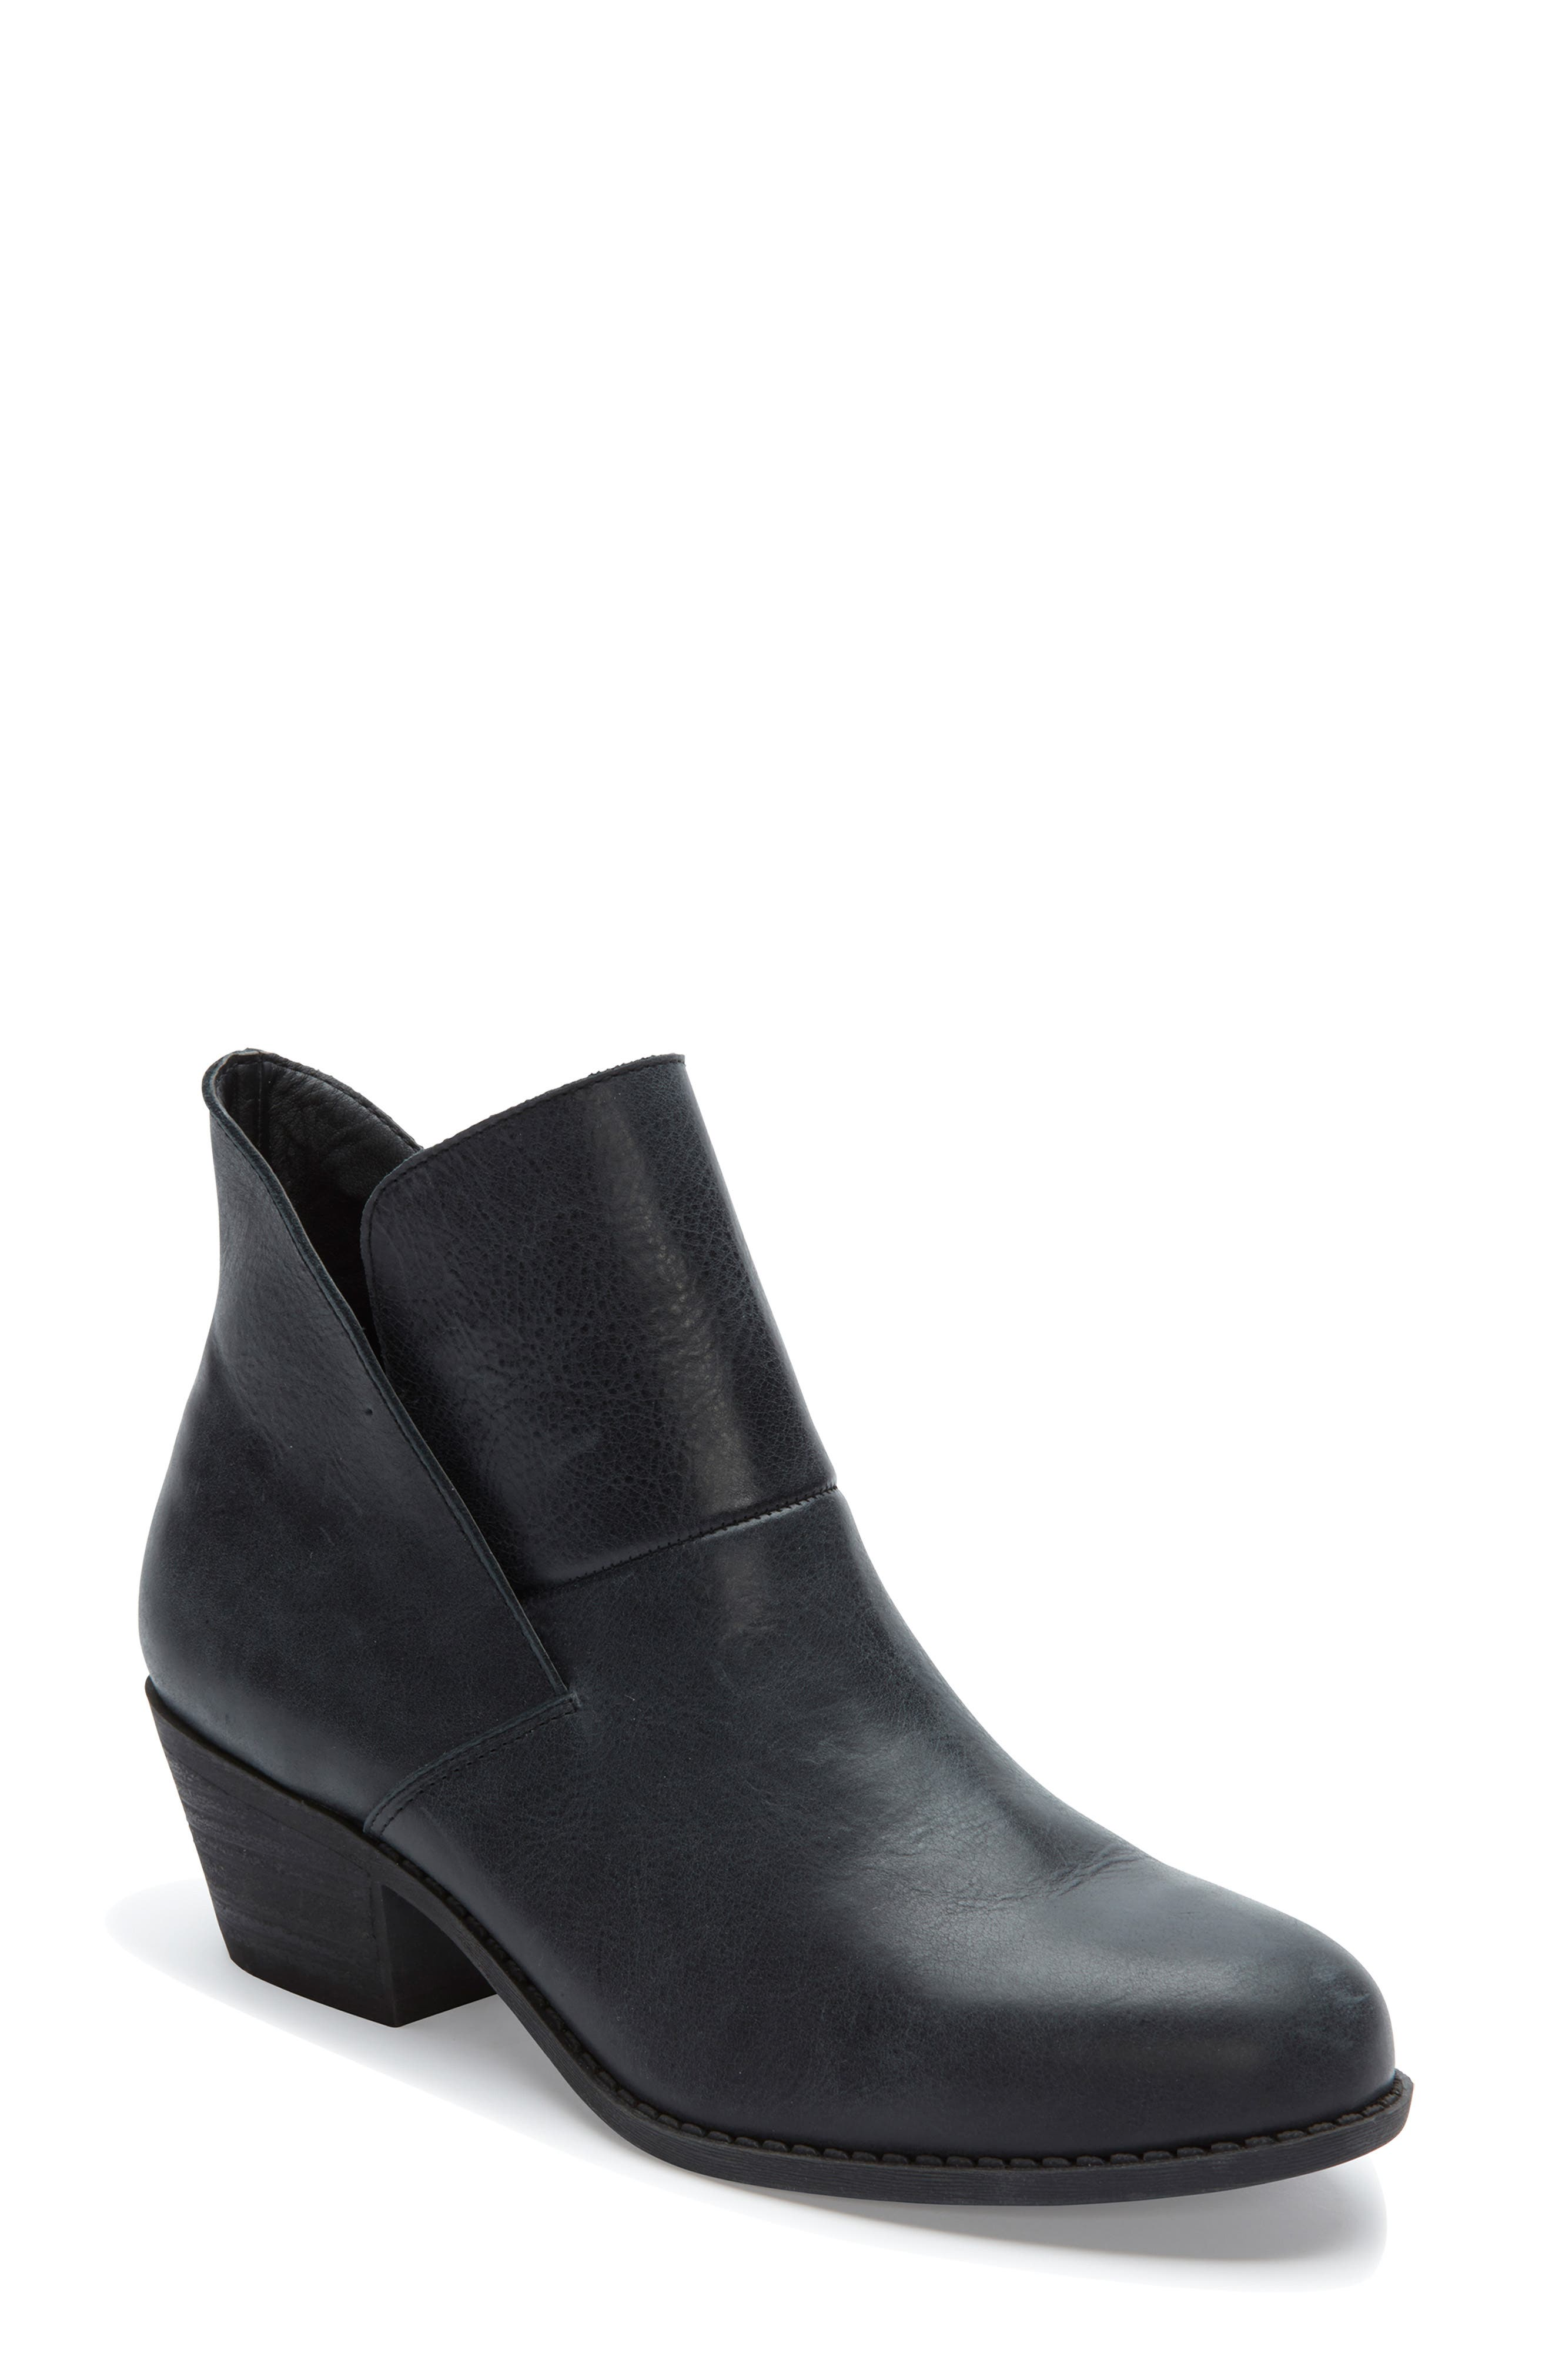 Me Too Zena Ankle Boot,                         Main,                         color, BLACK LEATHER